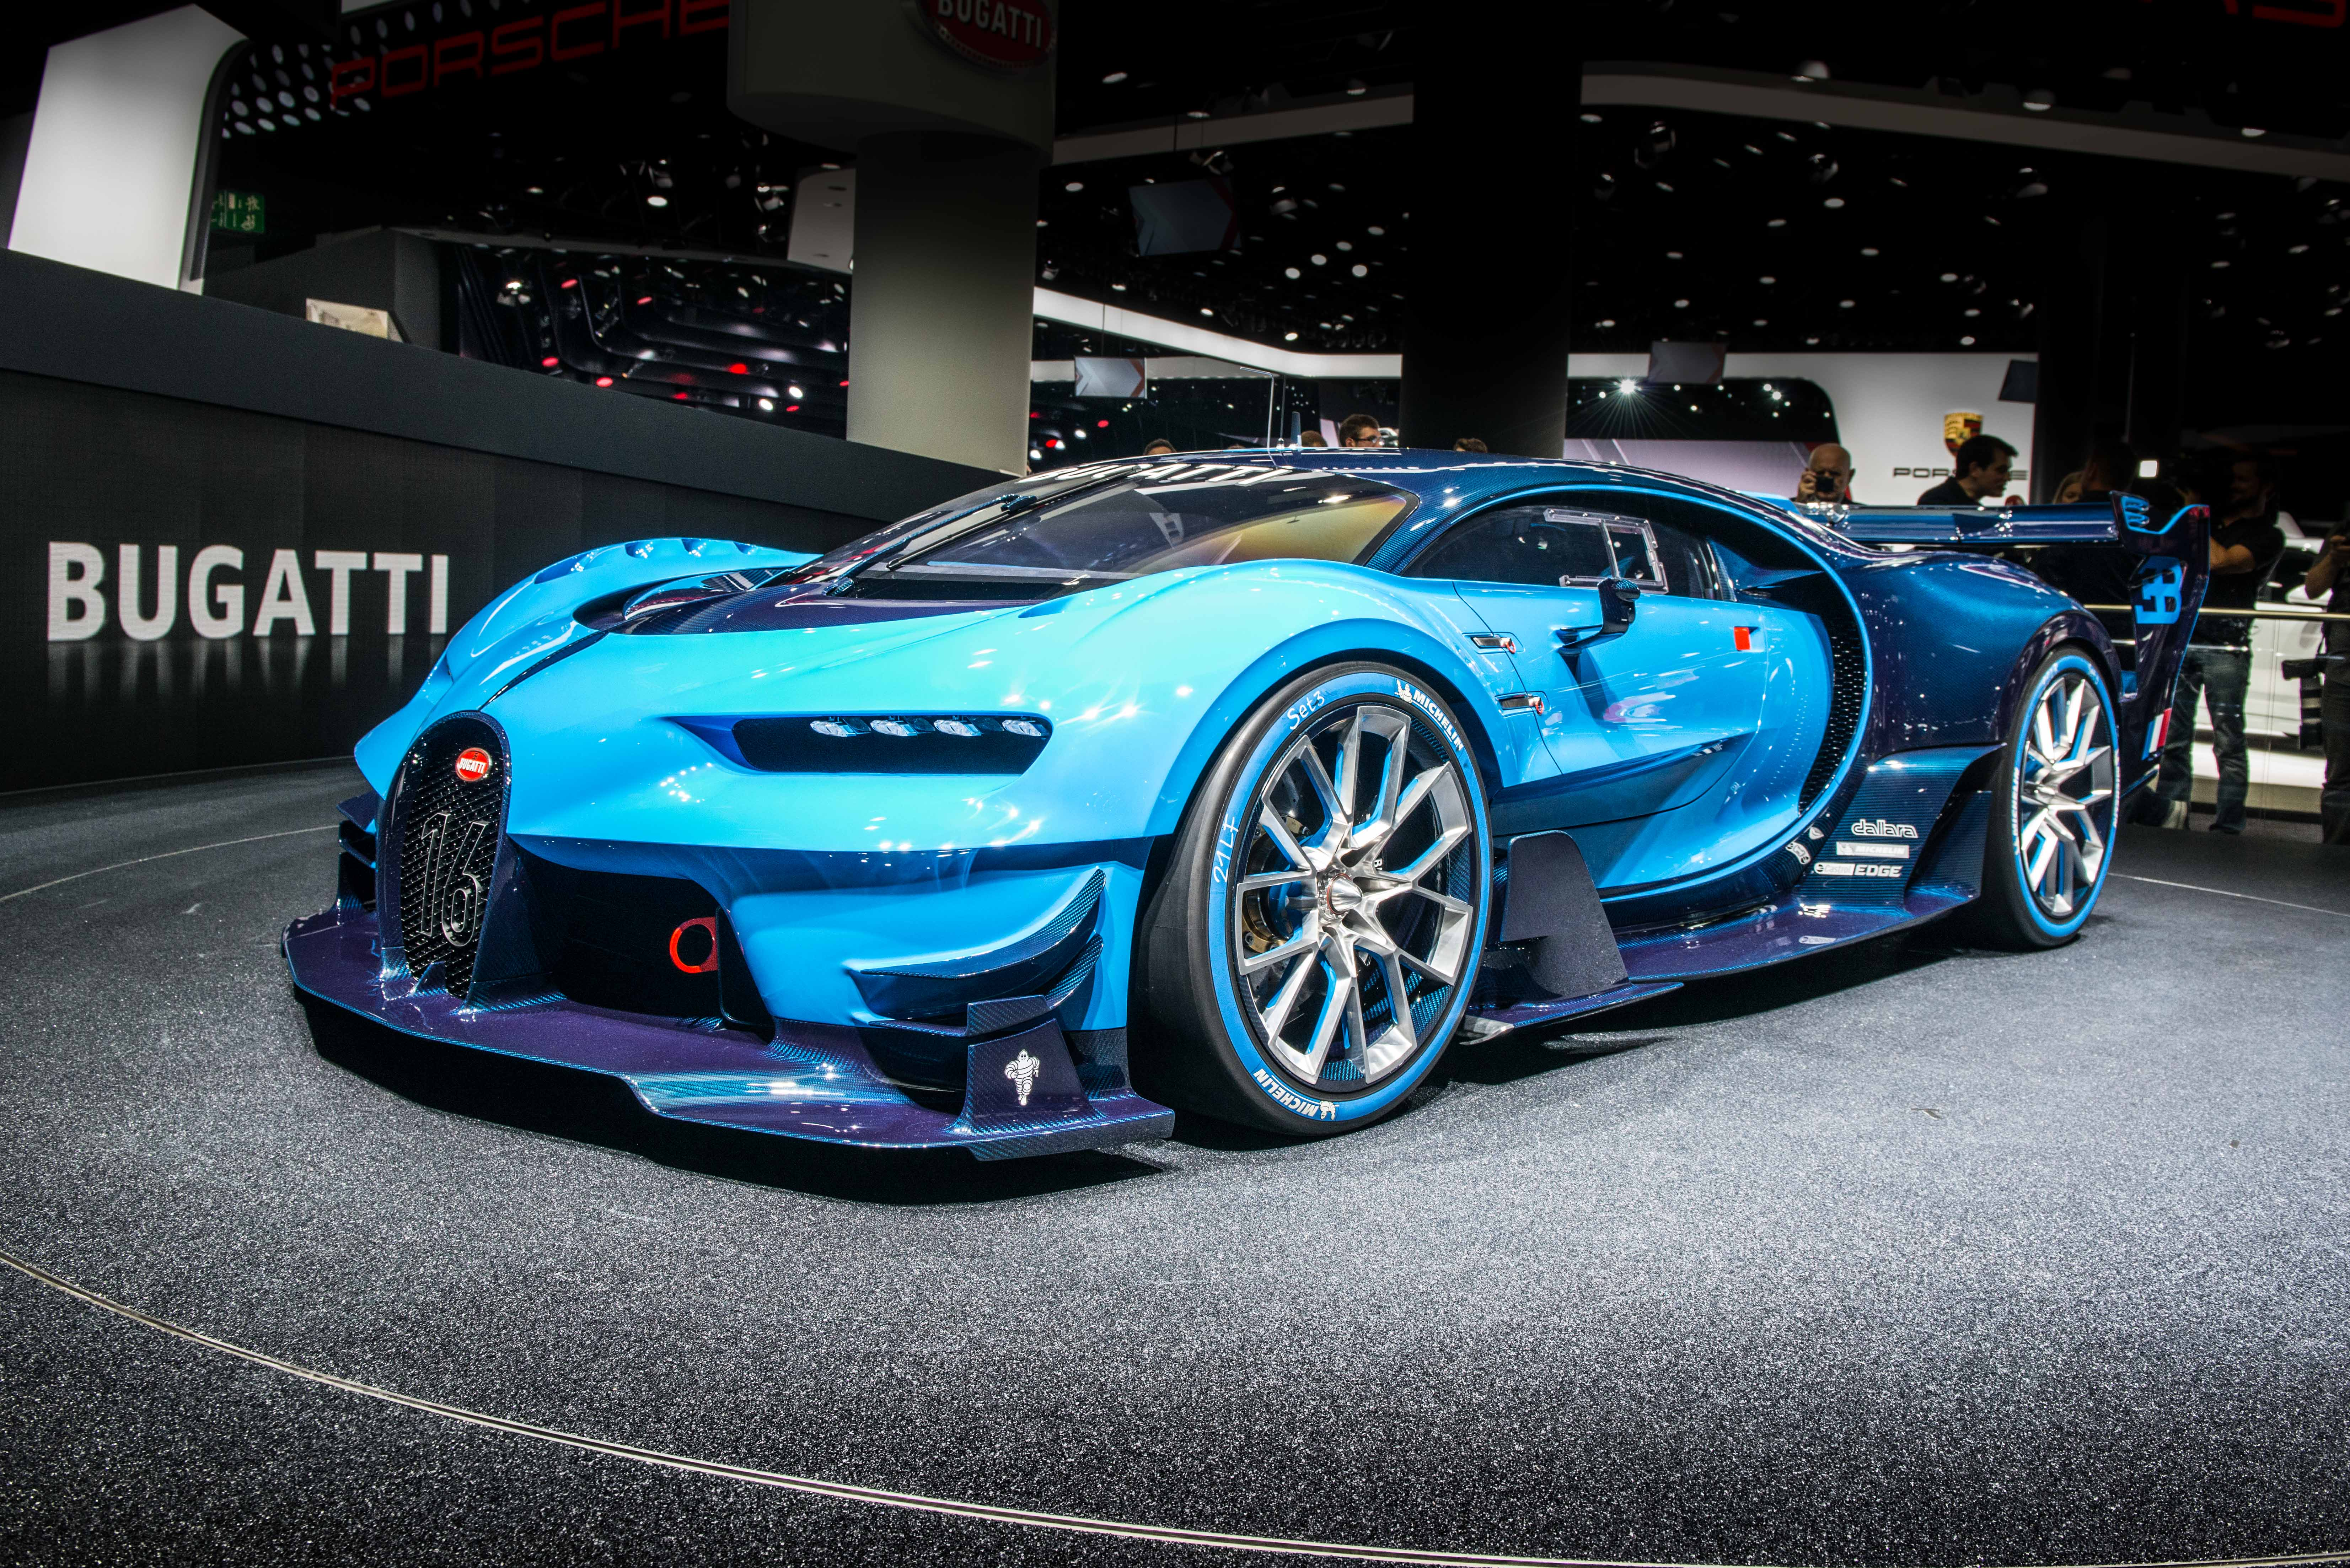 The new Bugatti is coming in 2016 | Top Gear